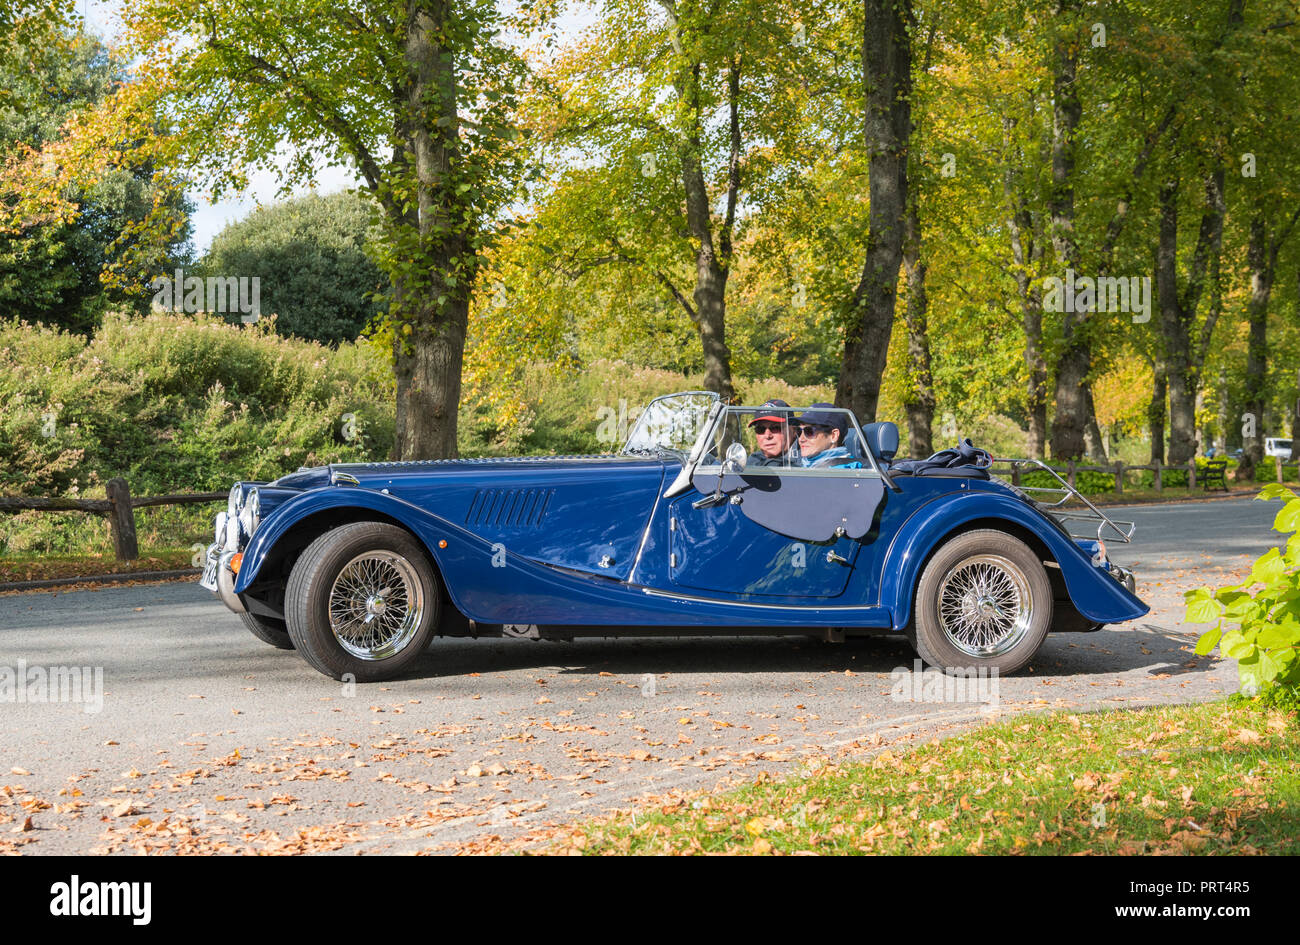 Morgan Plus 4, a blue convertible open top car with 2 passengers and the roof down, on a country road in the UK. Morgan Plus Four cars. - Stock Image